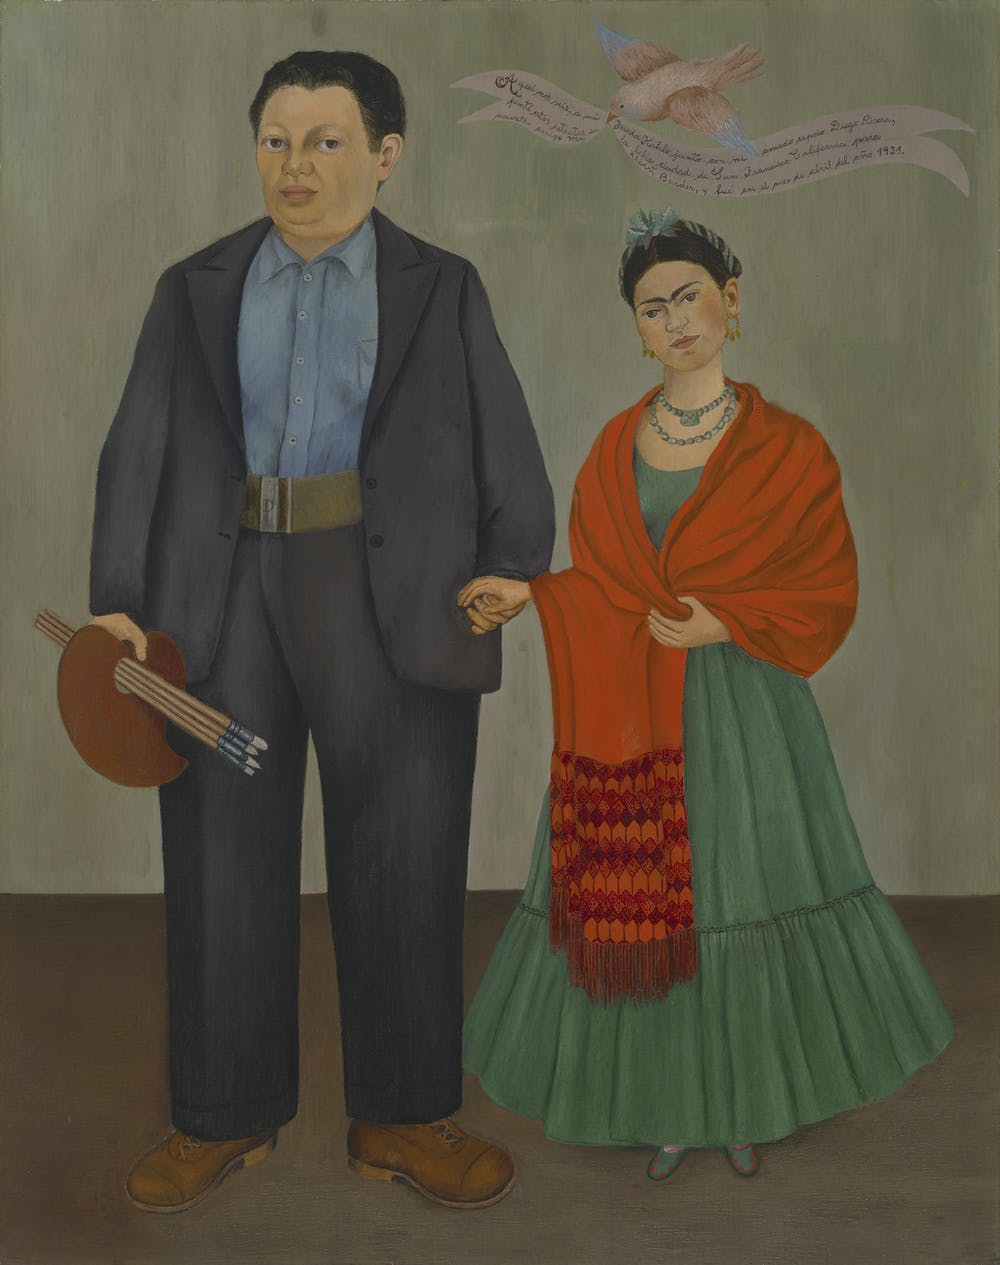 Detroit, 1932: when Diego Rivera and Frida Kahlo came to town